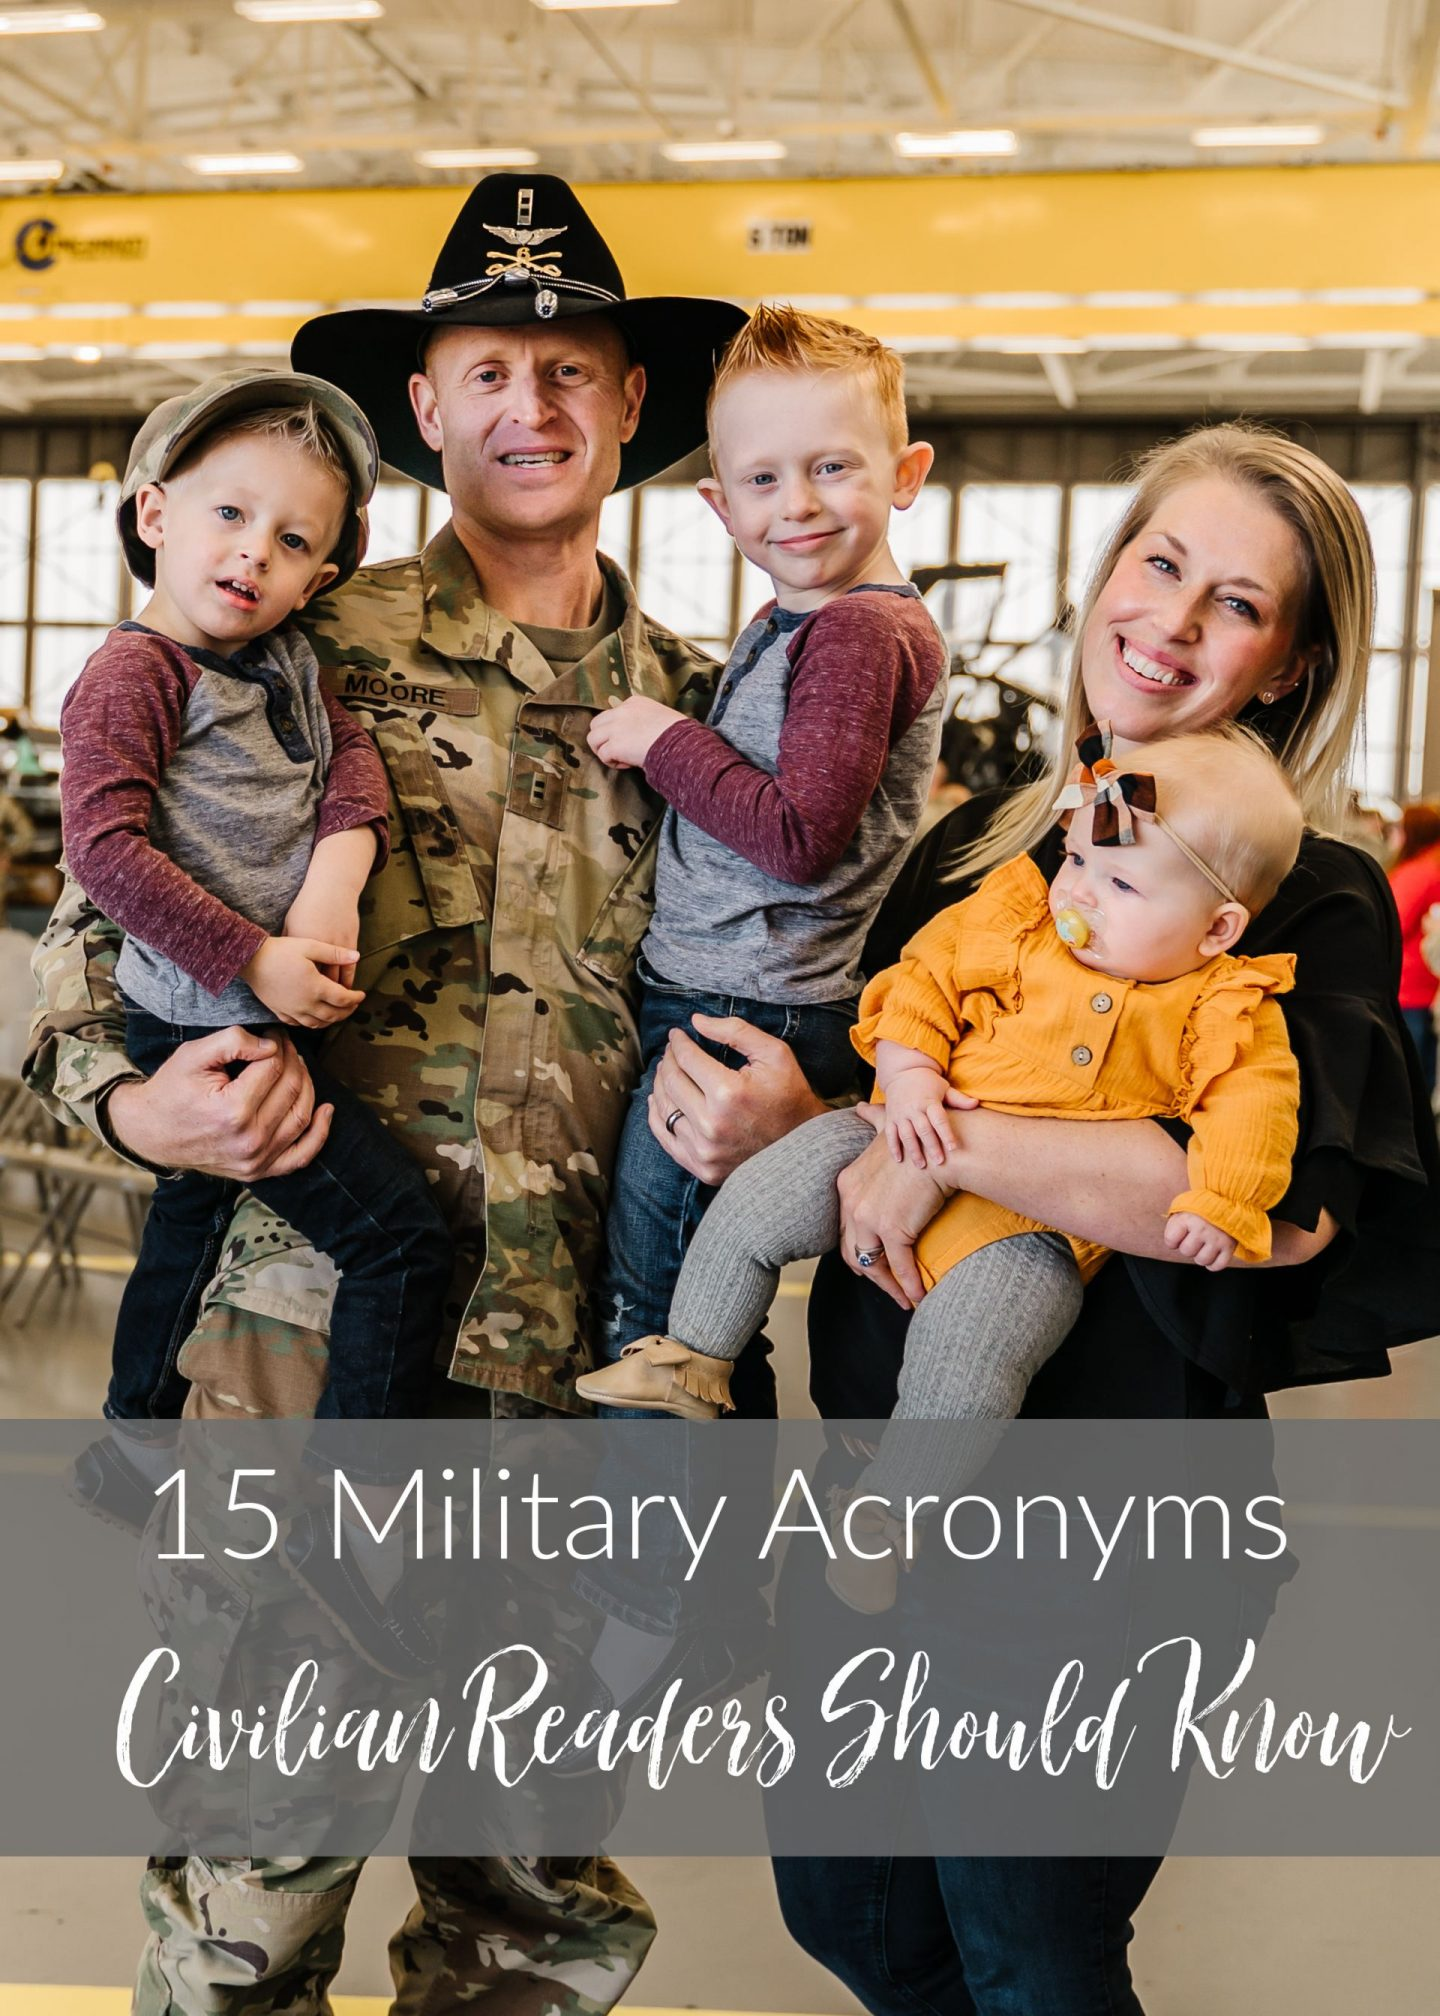 military acronyms non-military readers